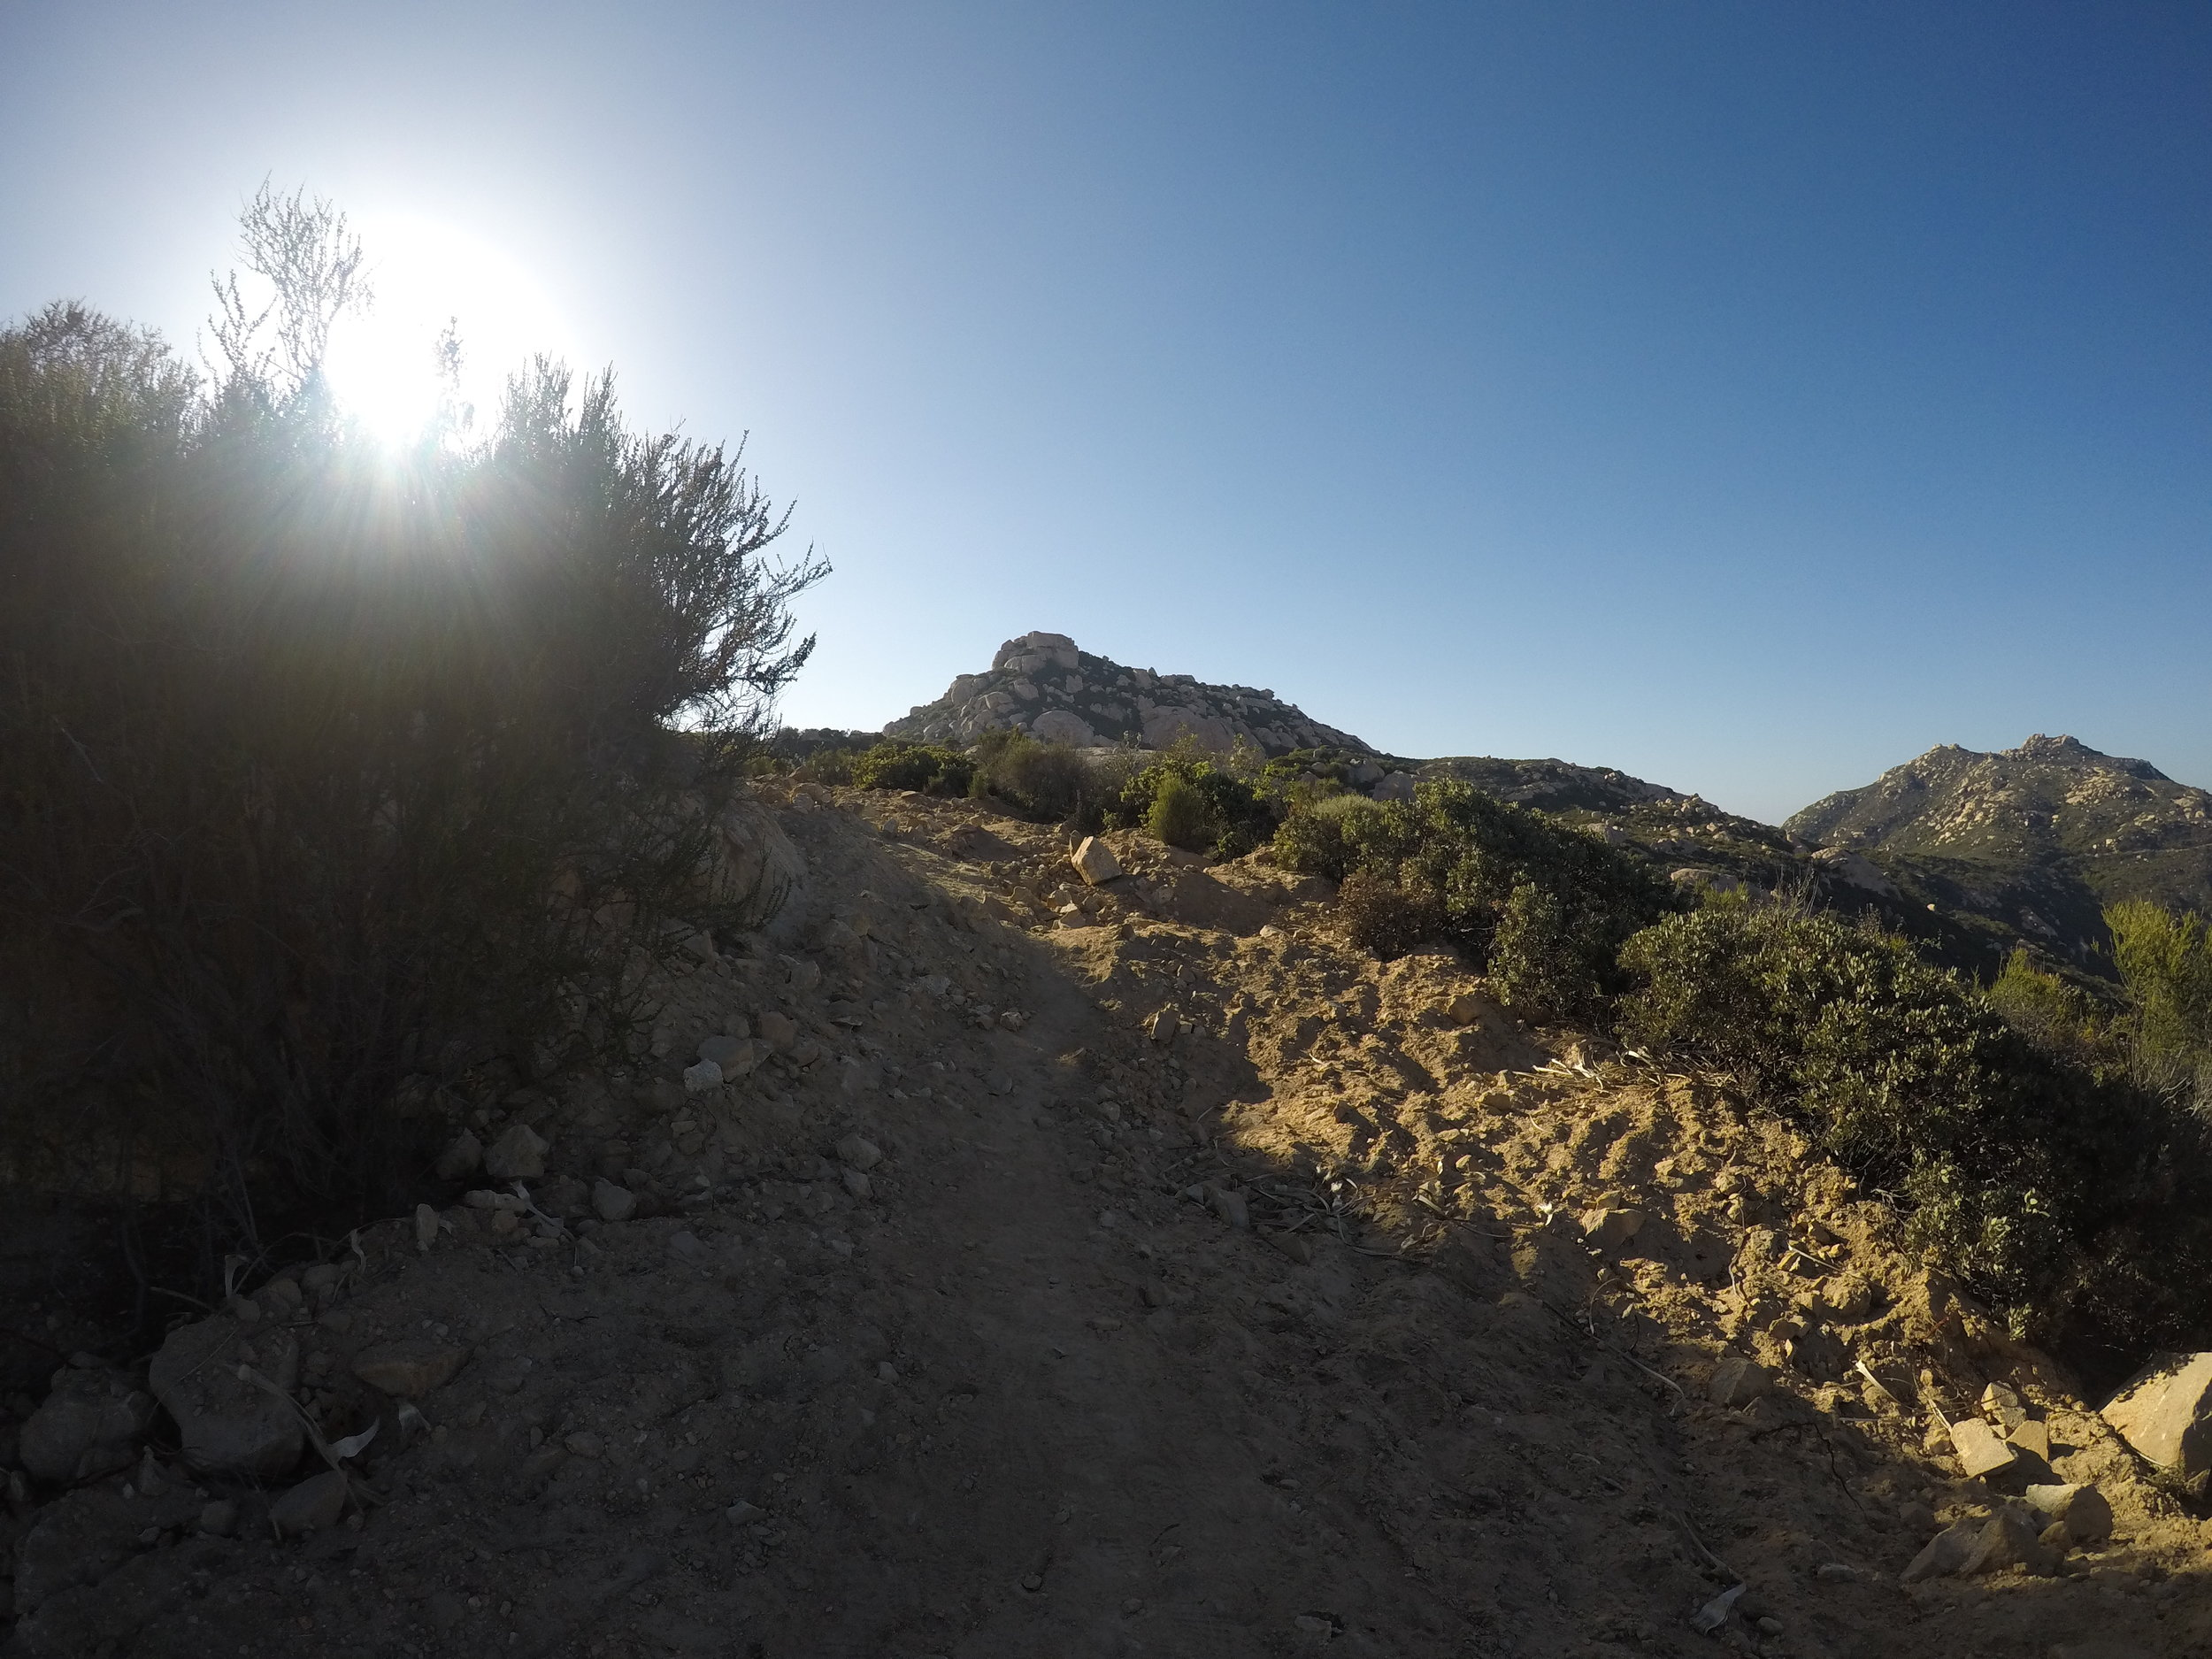 Carveacre Road is steep, and for most of the year, is exposed to direct sunlight, which hikers should be ready for in terms of proper attire, and having enough water.